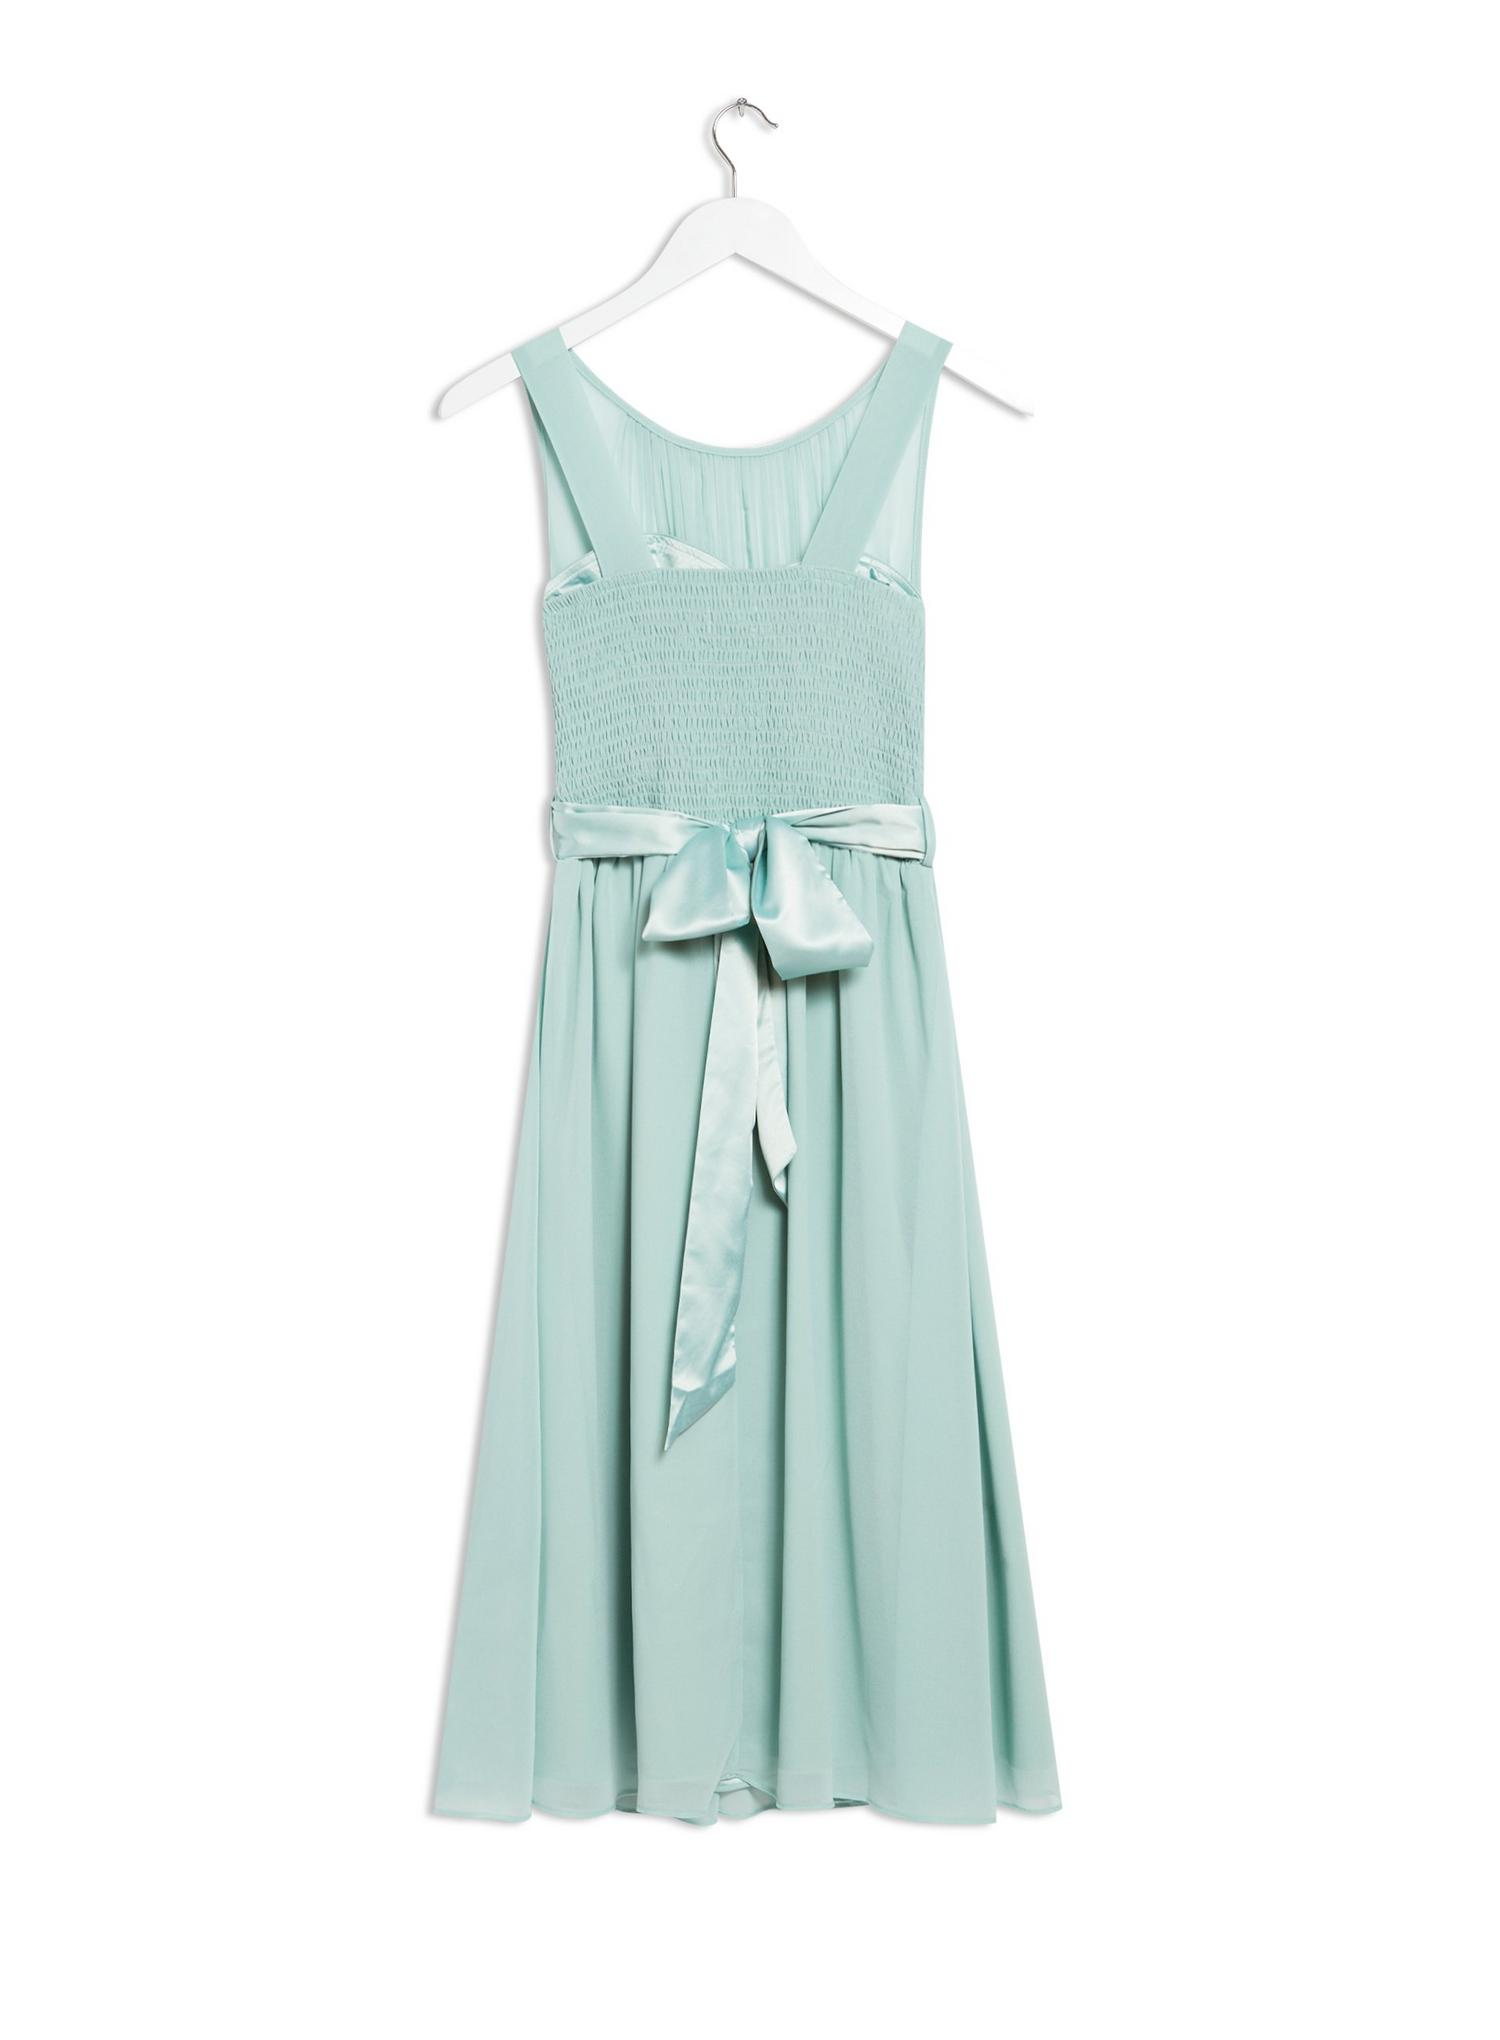 130 Green Bethany Bridesmaid Midi Dress image number 2